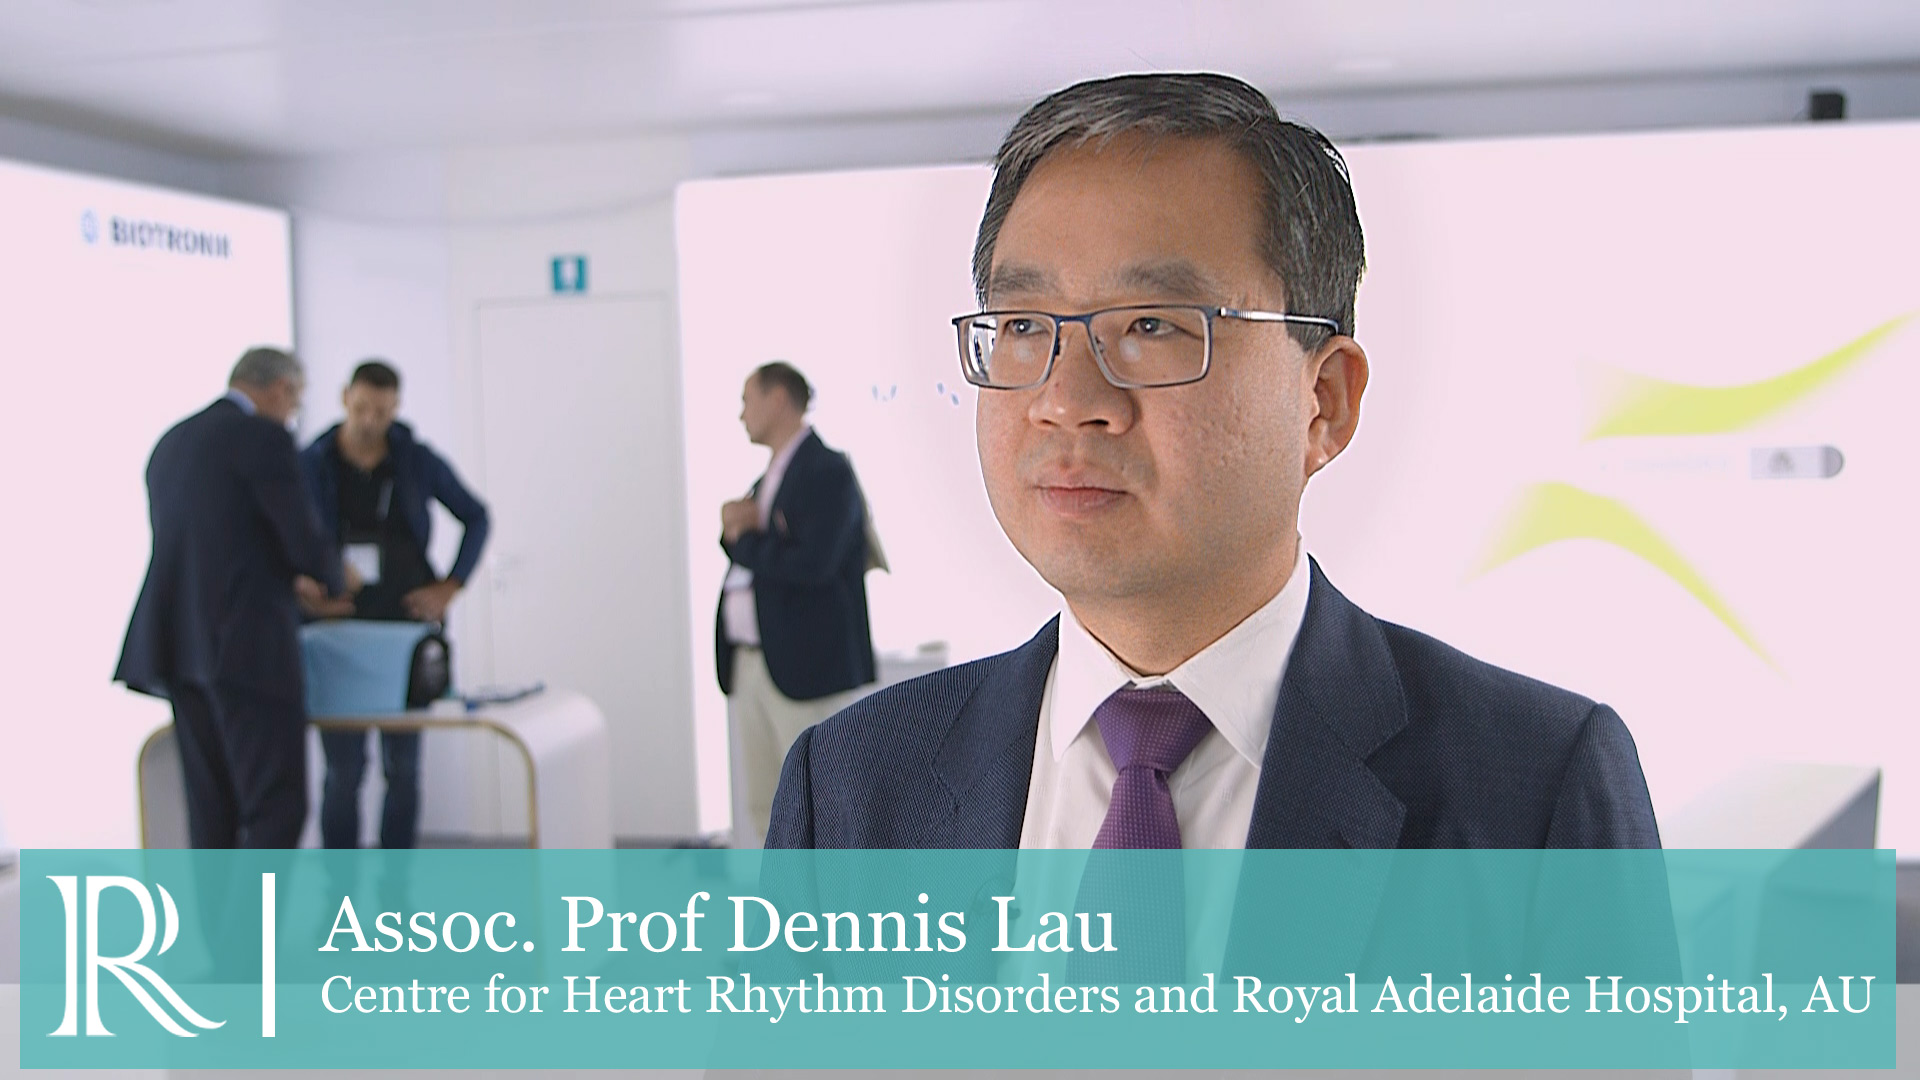 ESC 2019 - BIOMONITOR III Interim study results and firsthand experiences with the New ICM - Assoc. Prof Dennis Lau